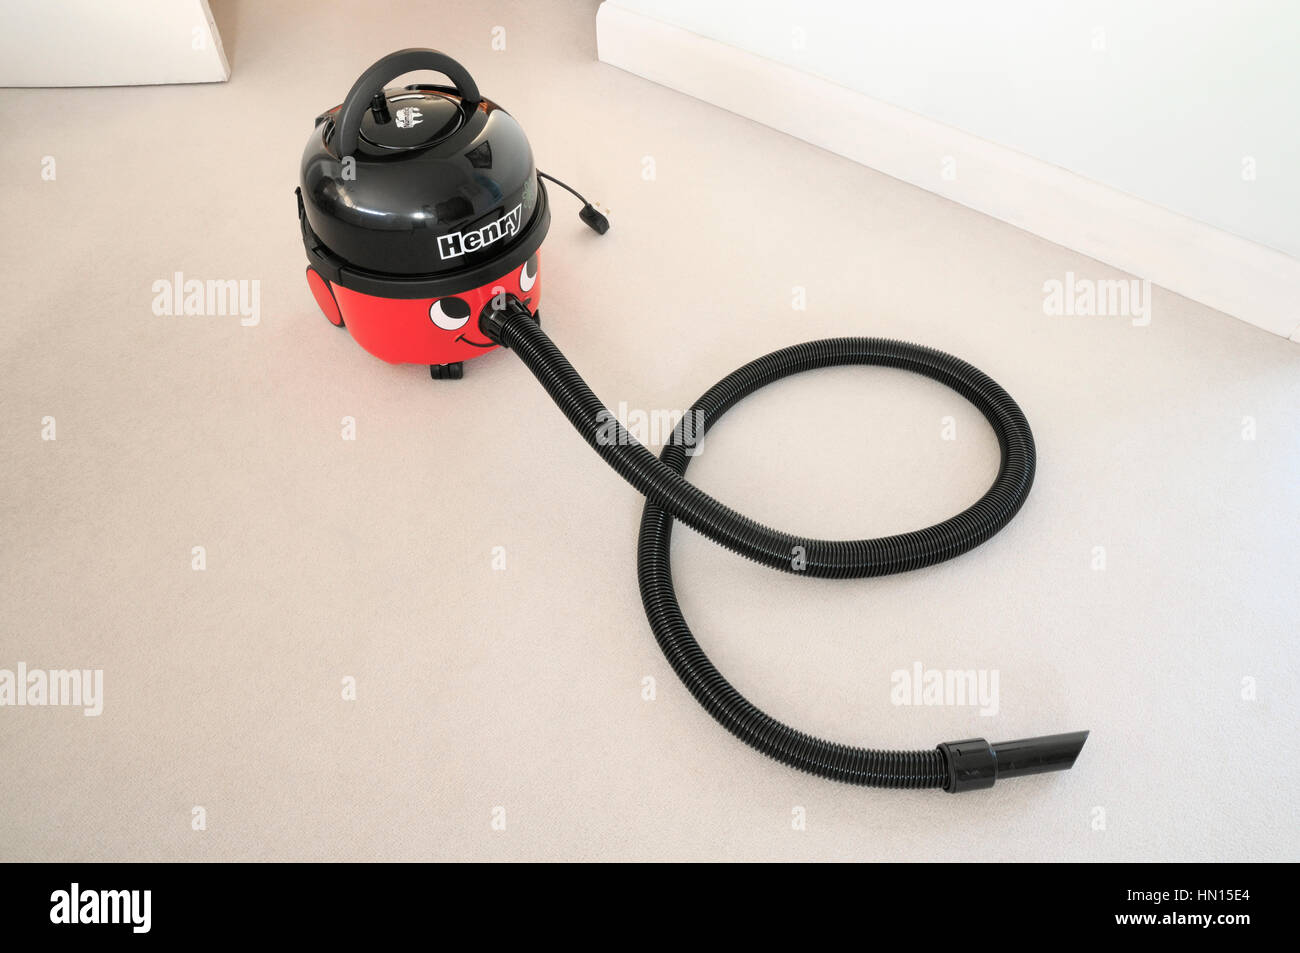 Henry Hoover vacuum cleaner - Stock Image